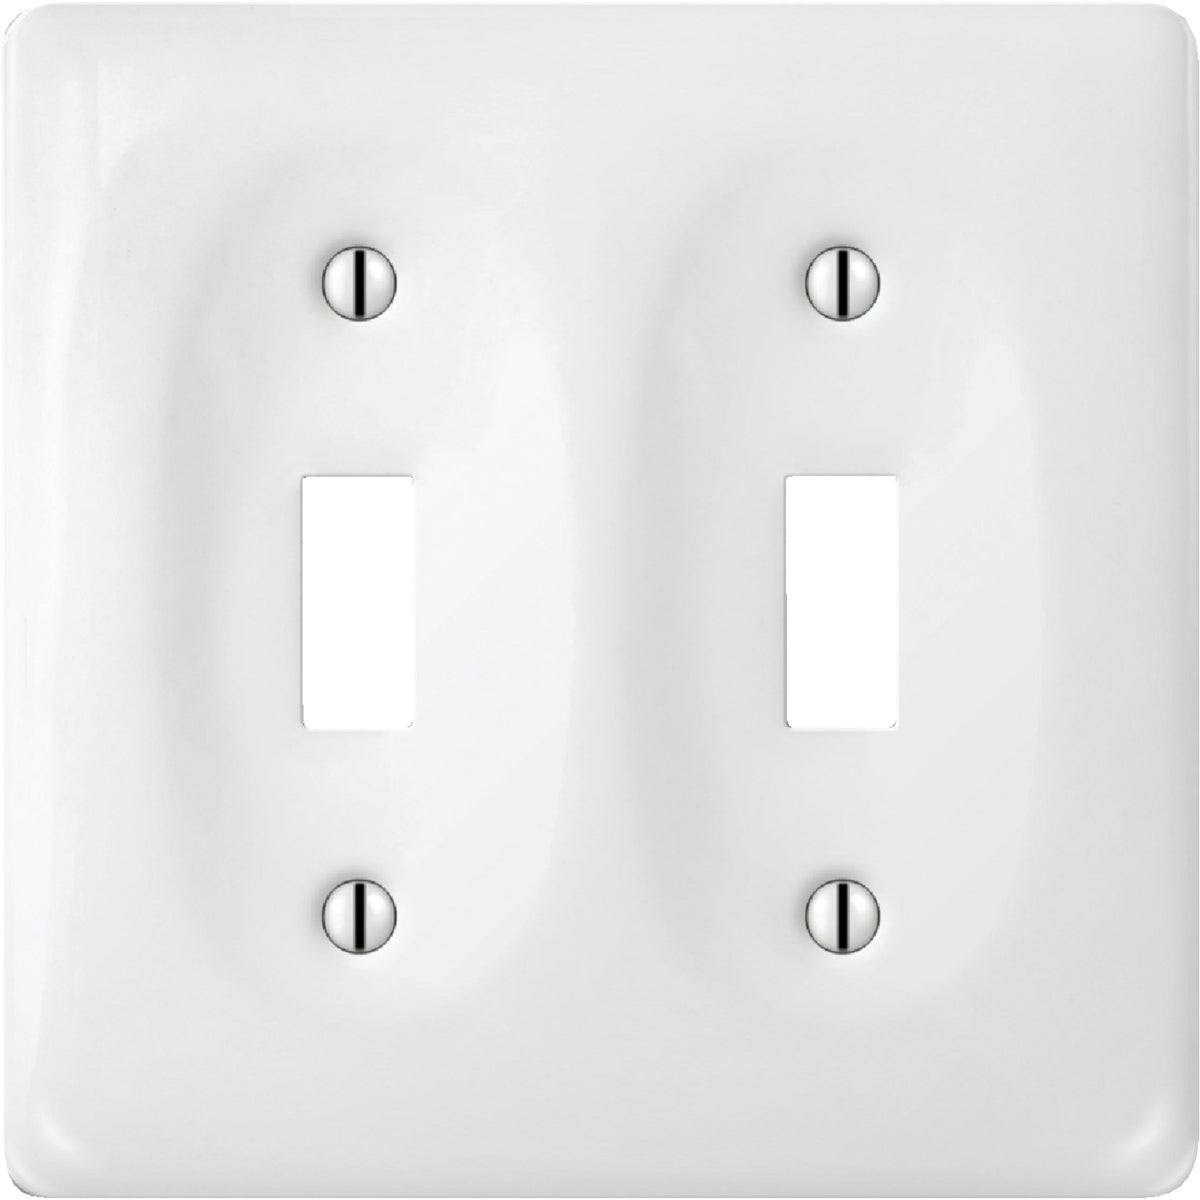 WHT PORC 2TOG WALL PLATE - 982CW by Jackson Deerfield Mf